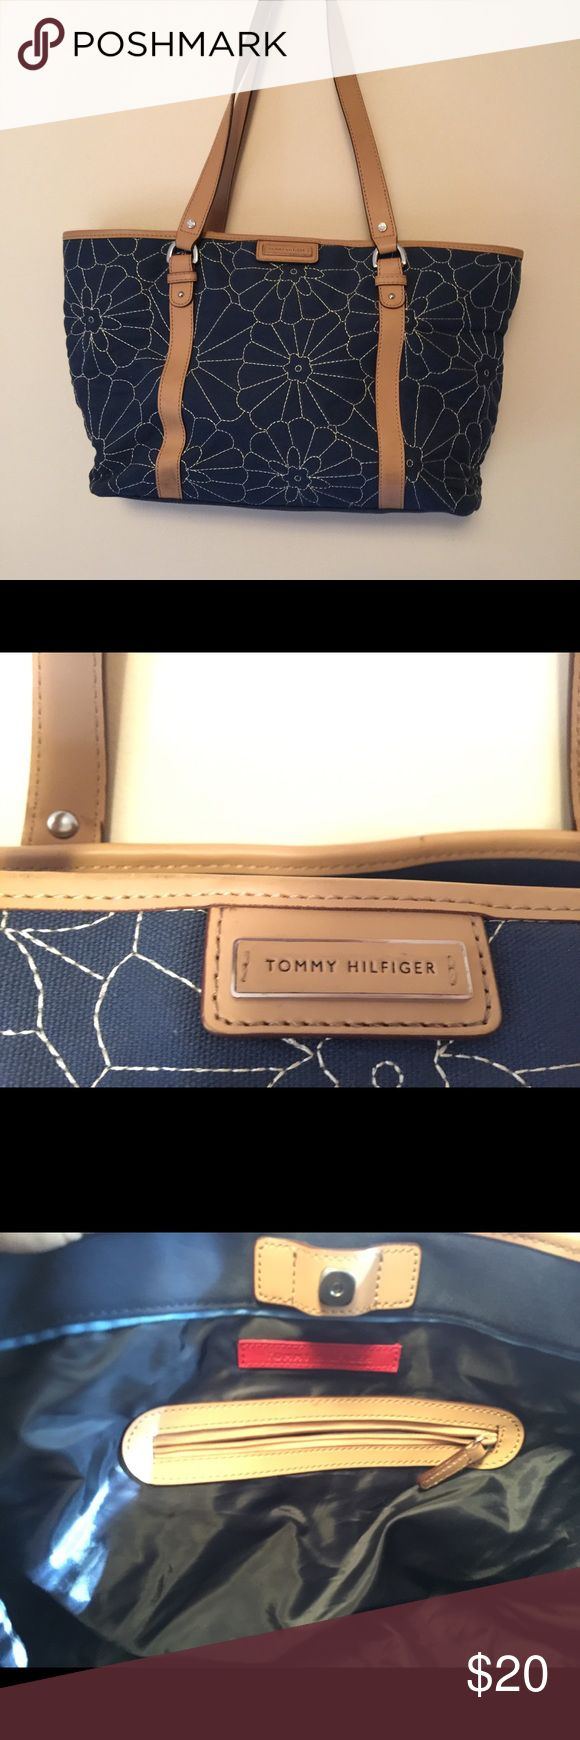 Tommy Hilfiger quilted tote bag purse Tommy Hilfiger quilted tote bag. Bag is like new! I bought this and never used it. This is a gorgeous bag you will be hairs tees to love! Tommy Hilfiger Bags Totes